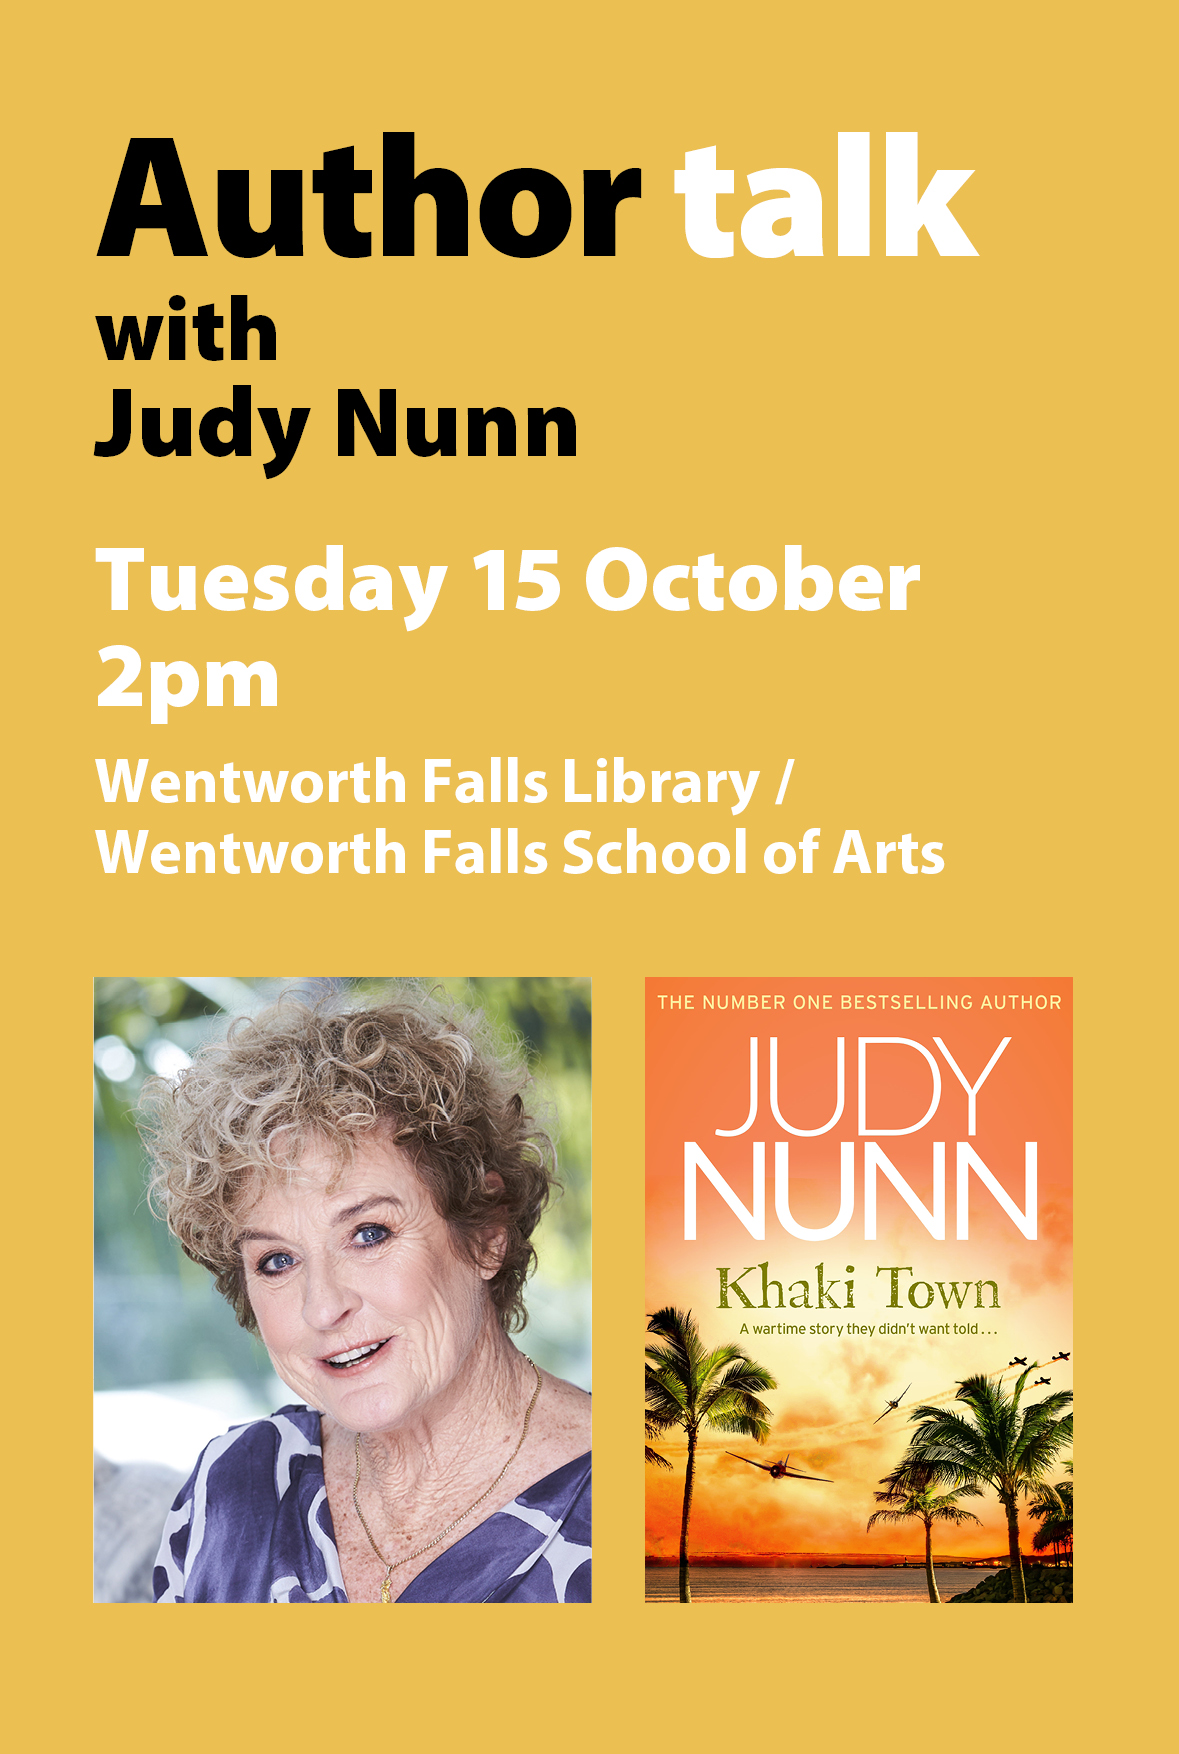 An author talk with Judy Nunn. Tuesday 15 October, 2pm at Wentworth Falls School of Arts. $10 bookings essential.